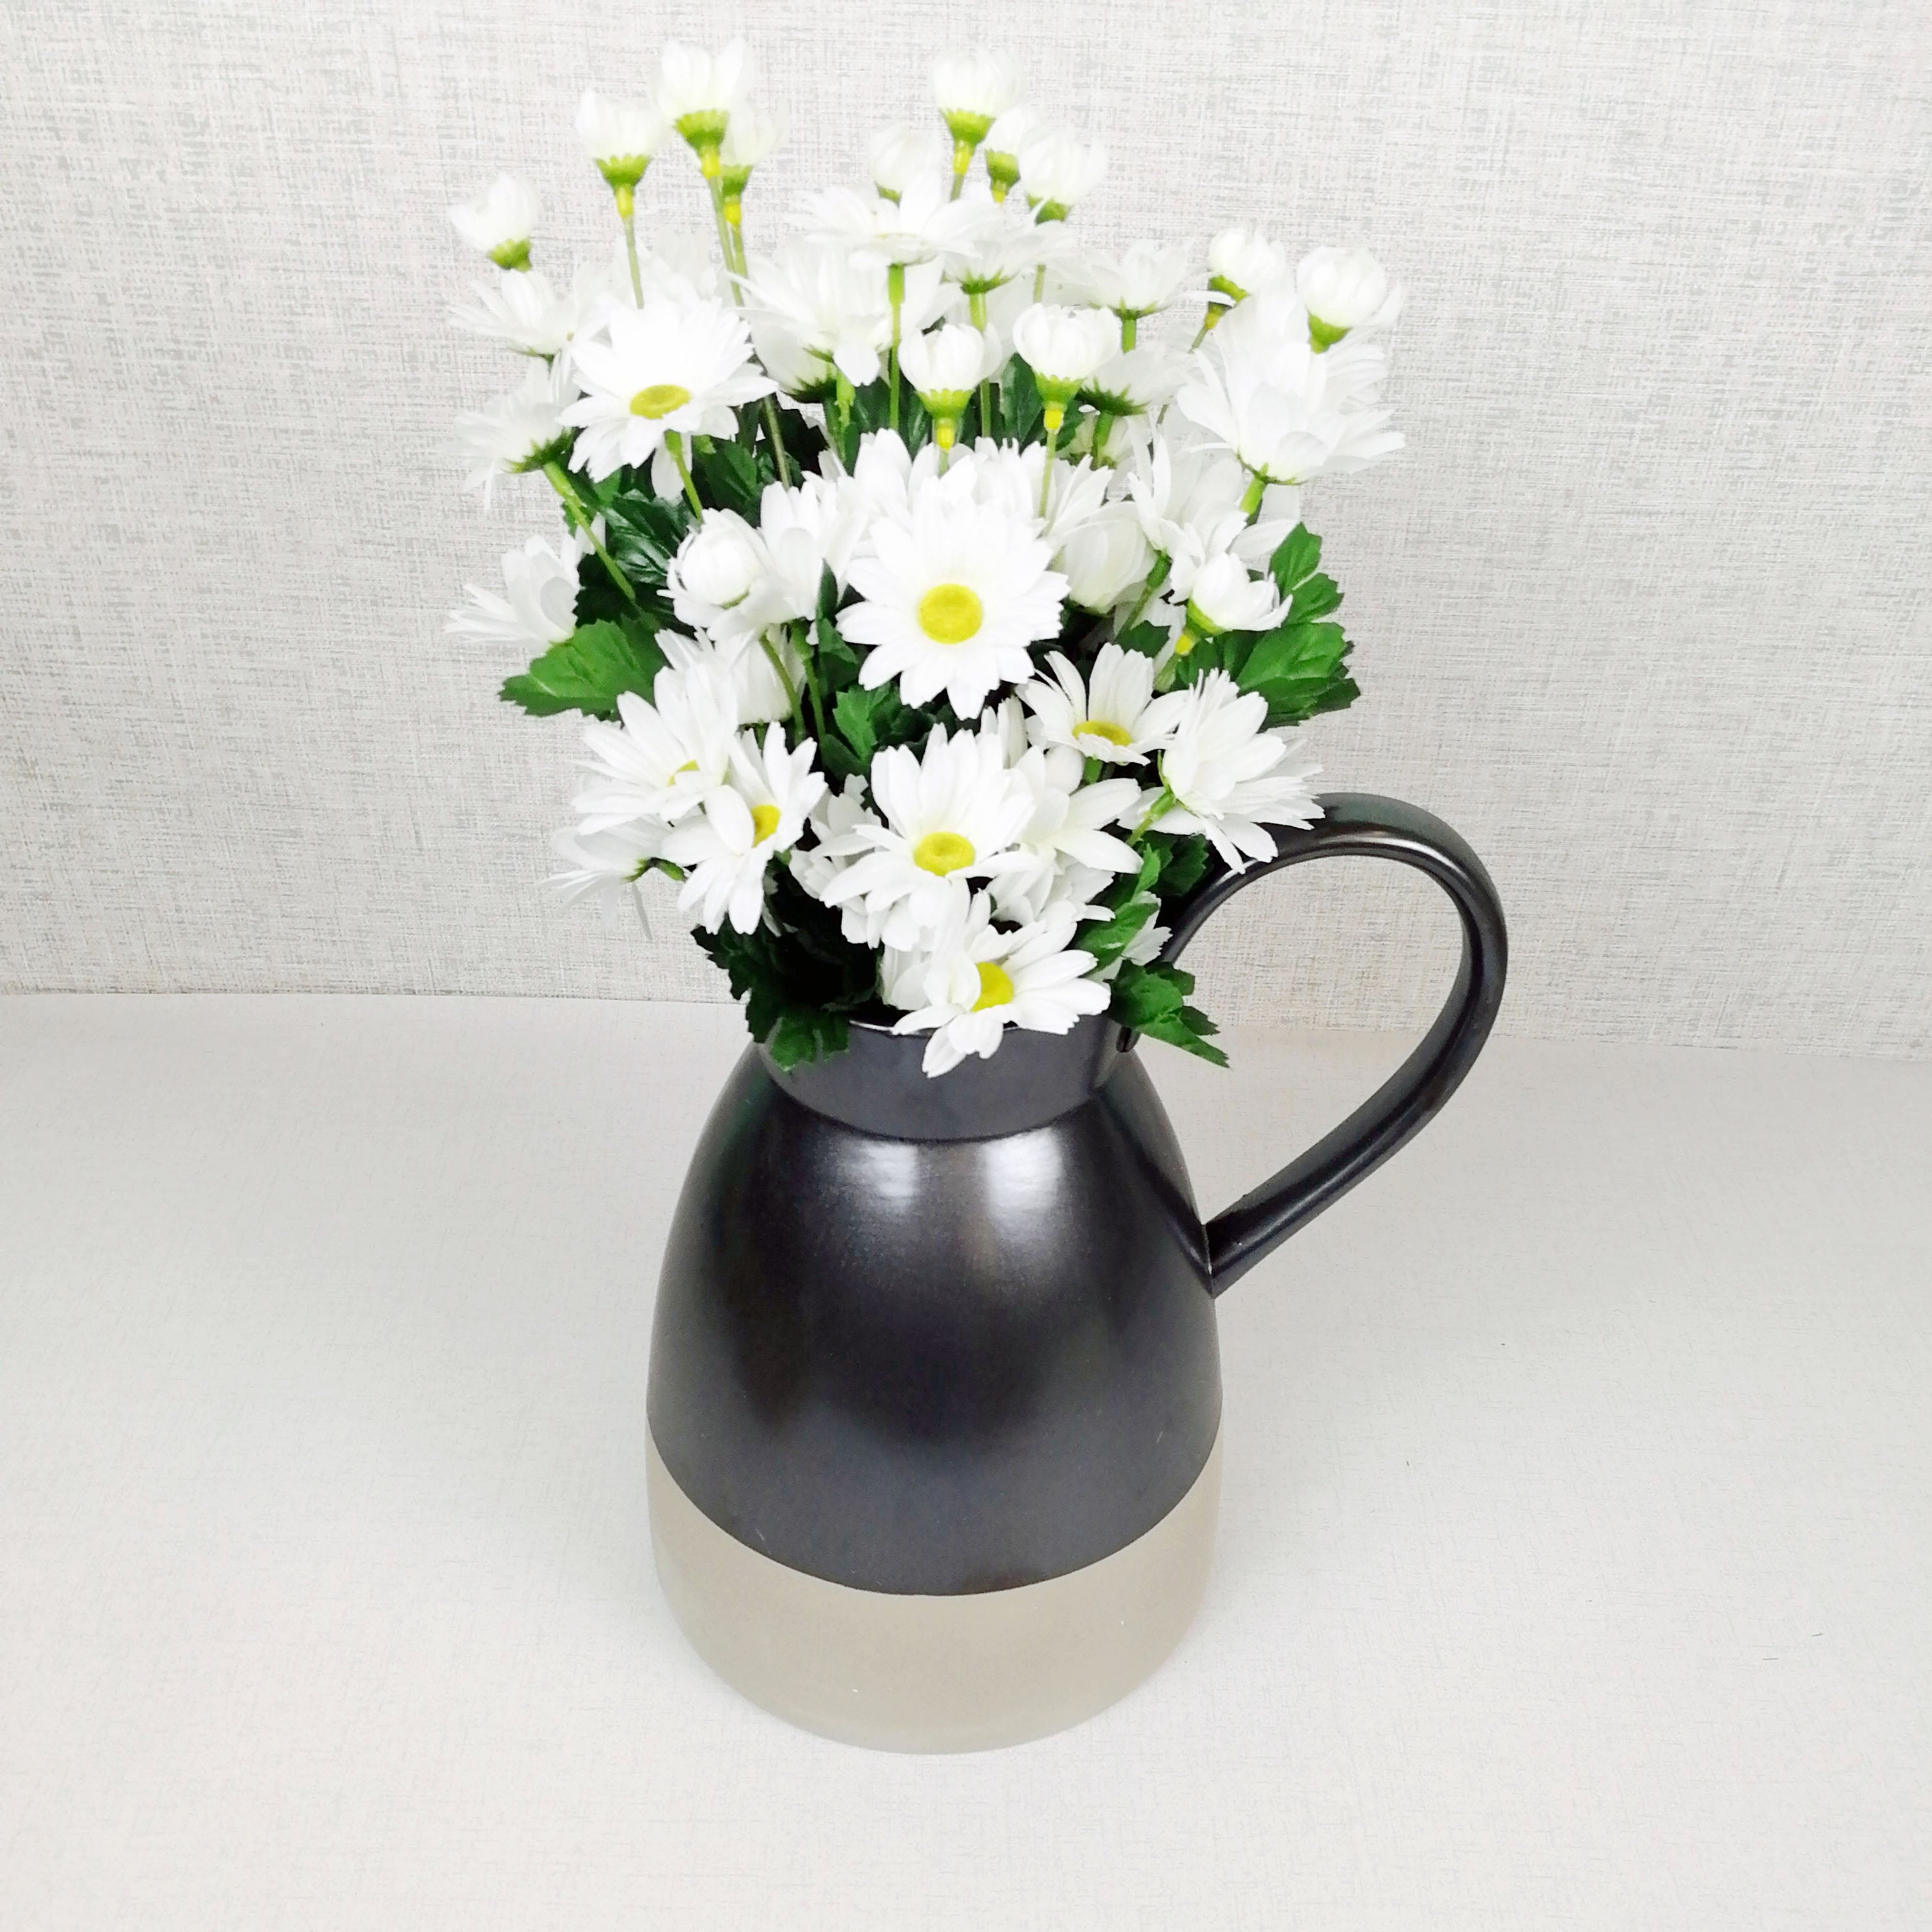 Metallic Style Ceramic Jug with white flowers